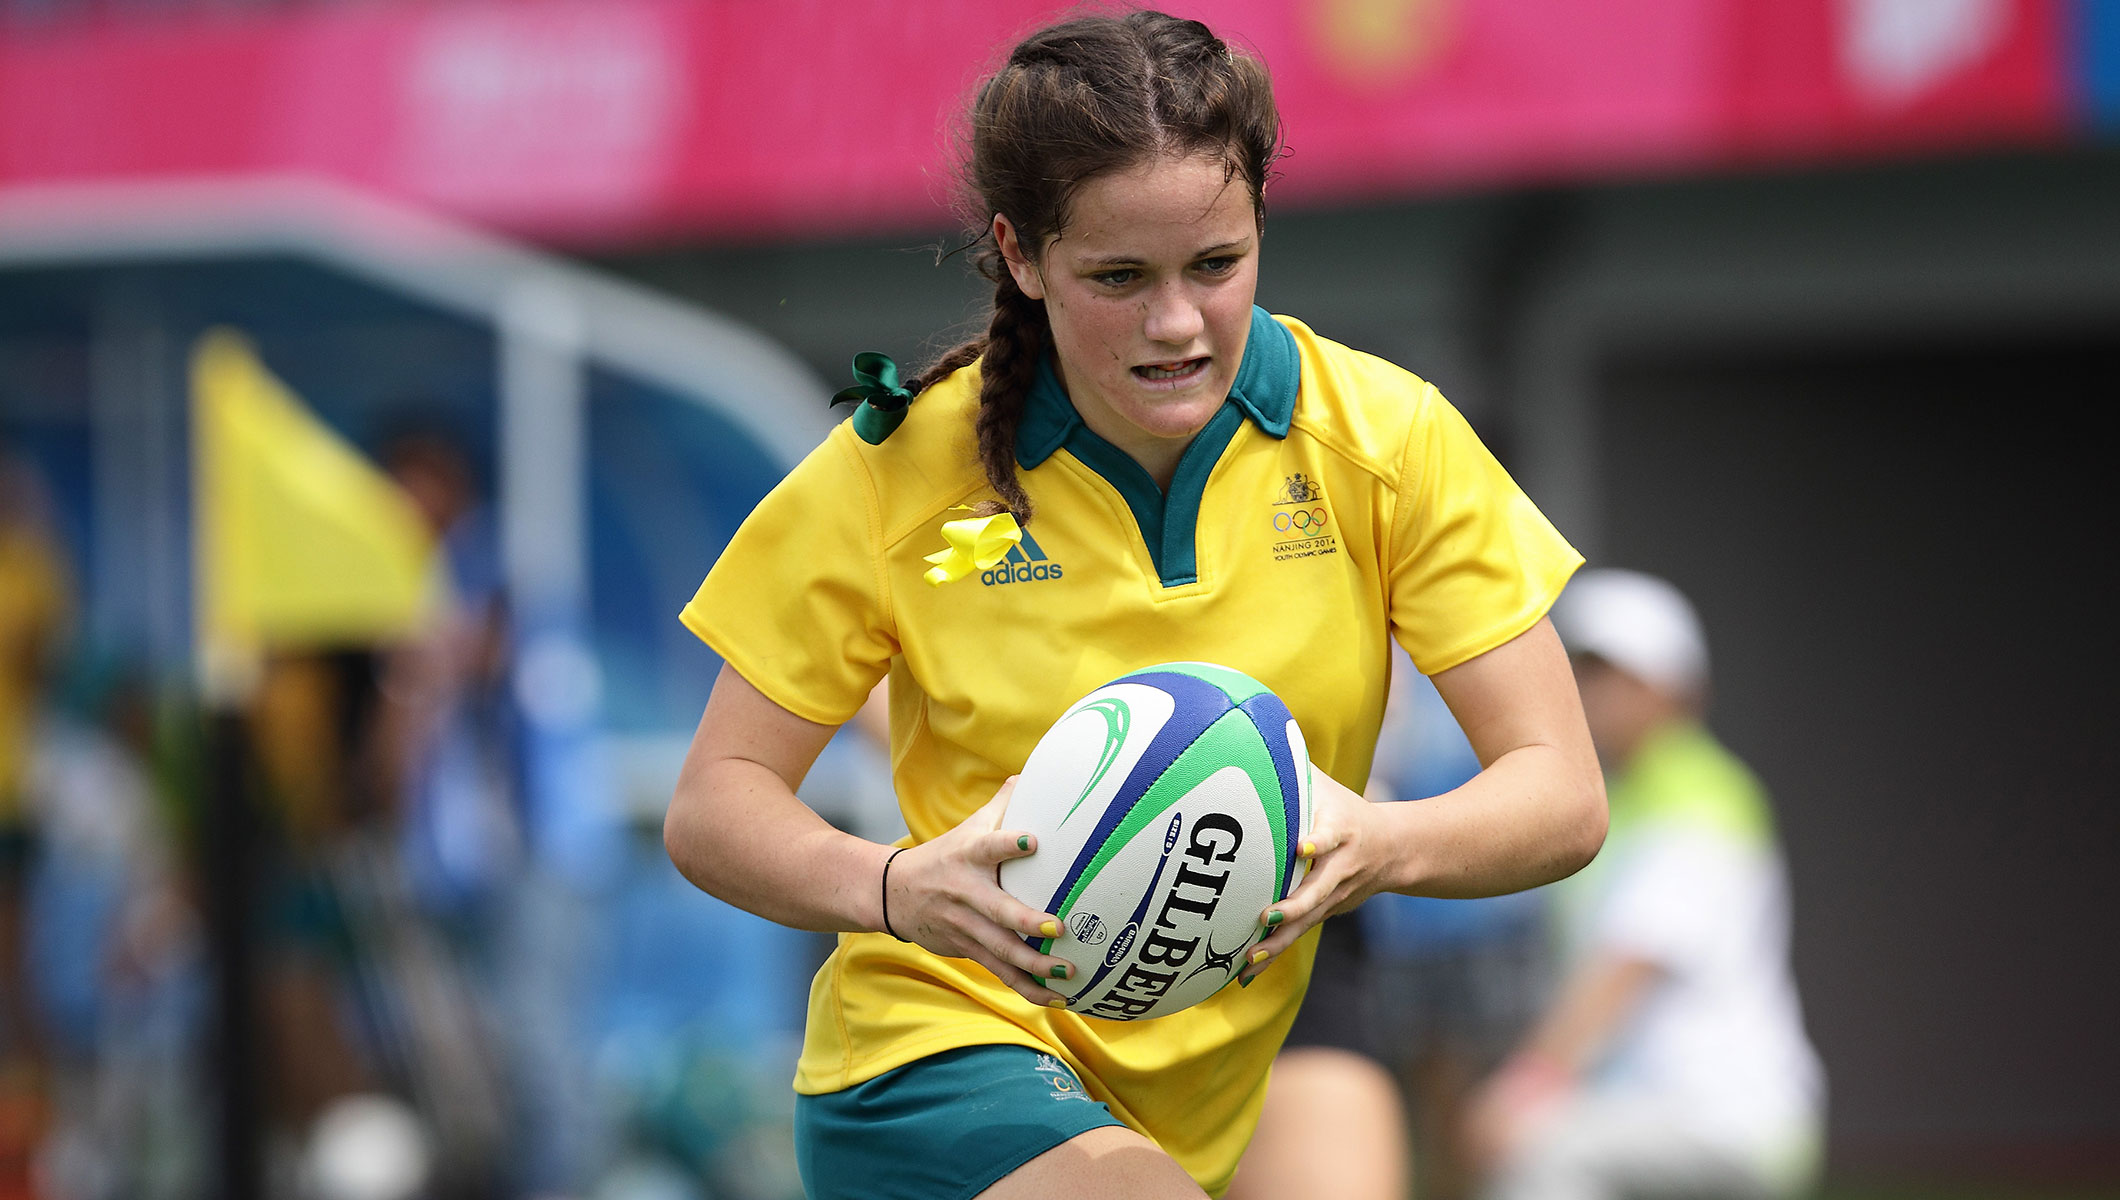 Dom du Toit of Australia runs with the ball and scores a try at the Rugby Sevens Final of the Nanjing 2014 Summer Youth Olympic Games